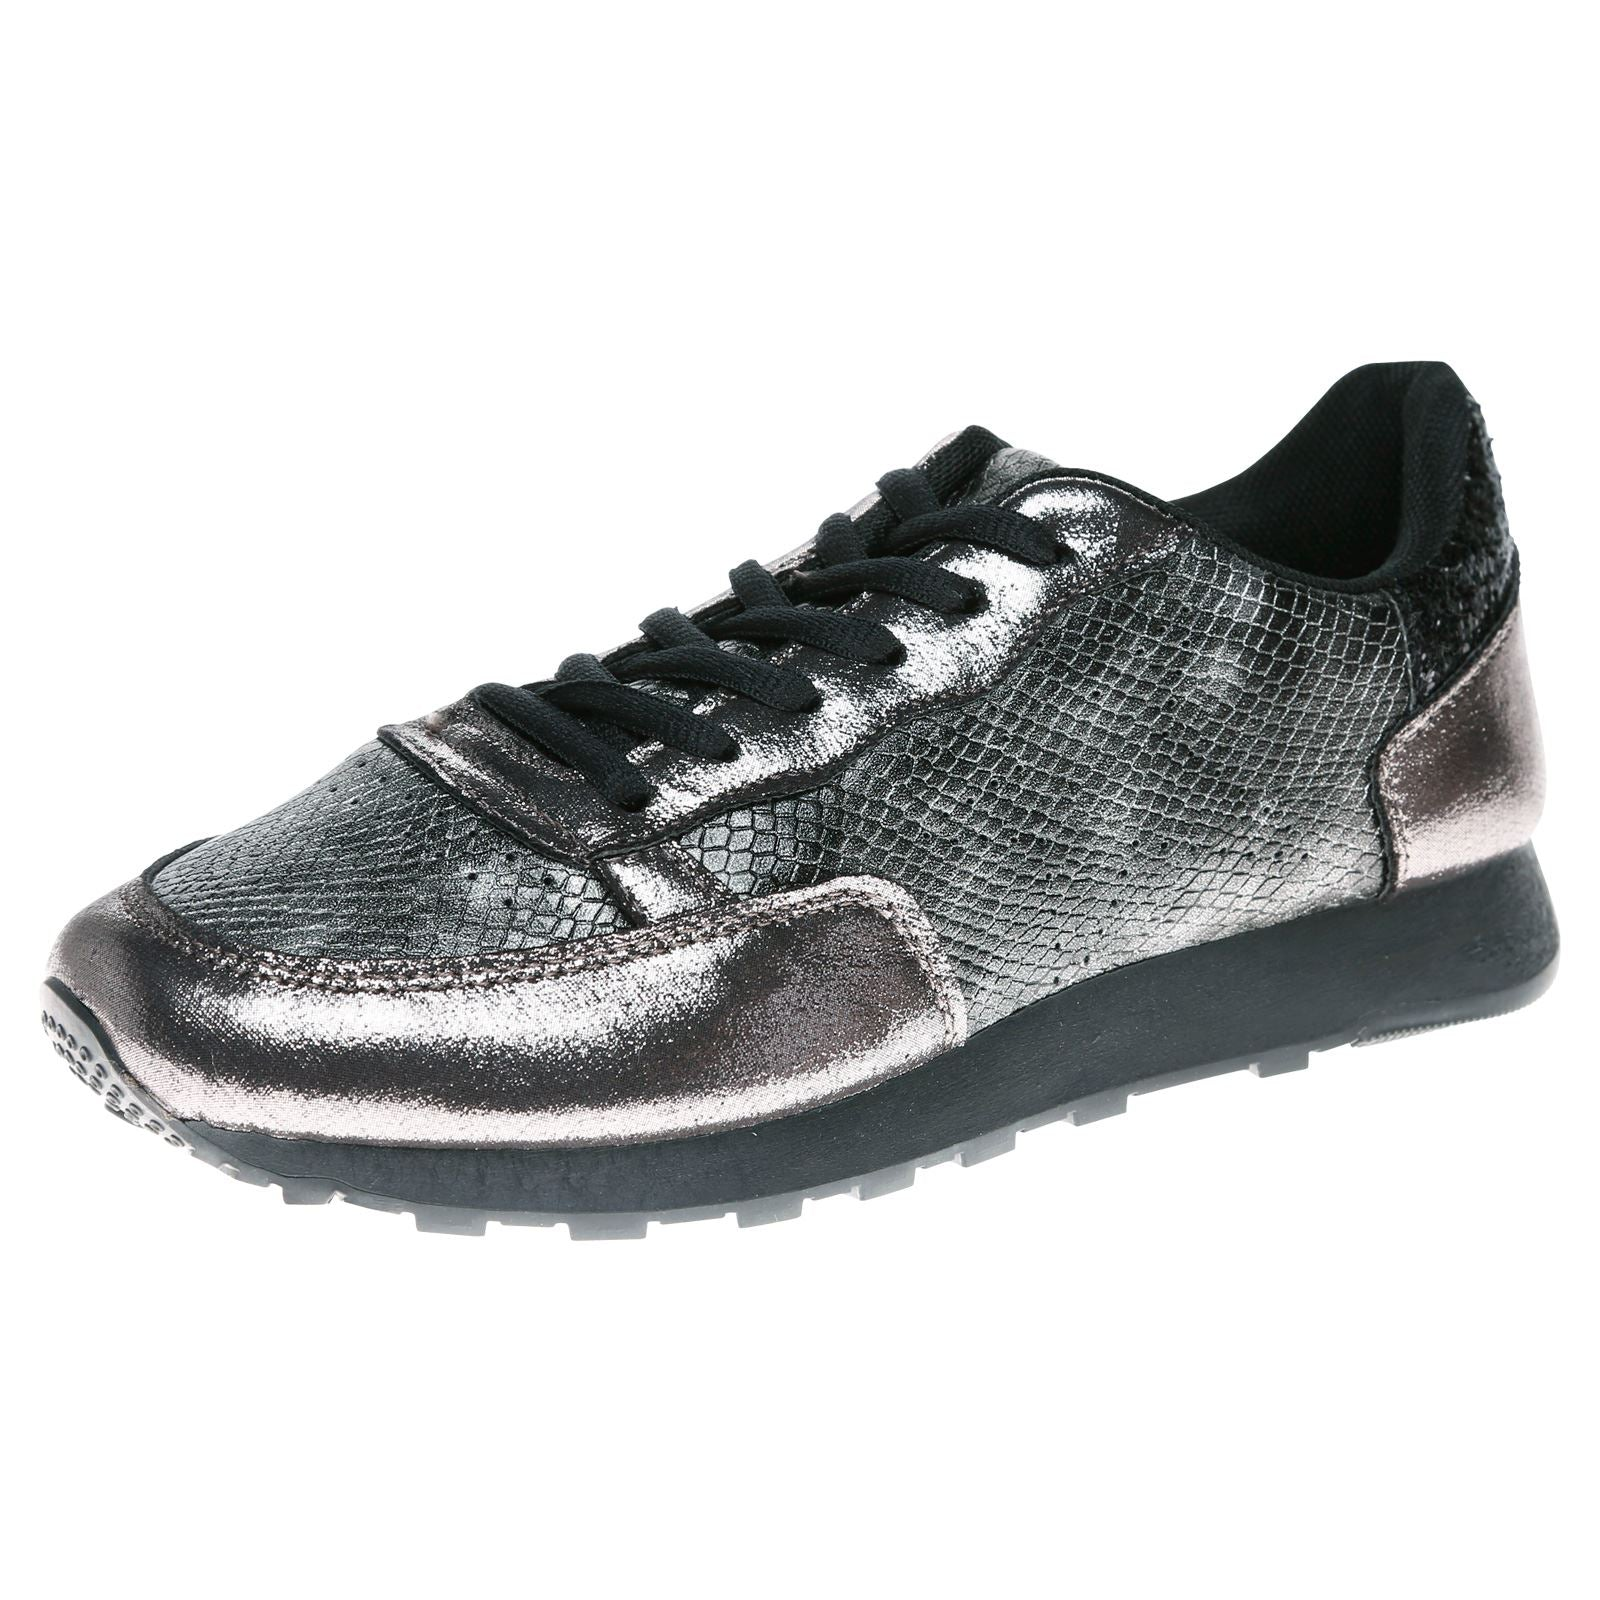 Amani Two Tone Glitter Trainers in Dark Grey Snake